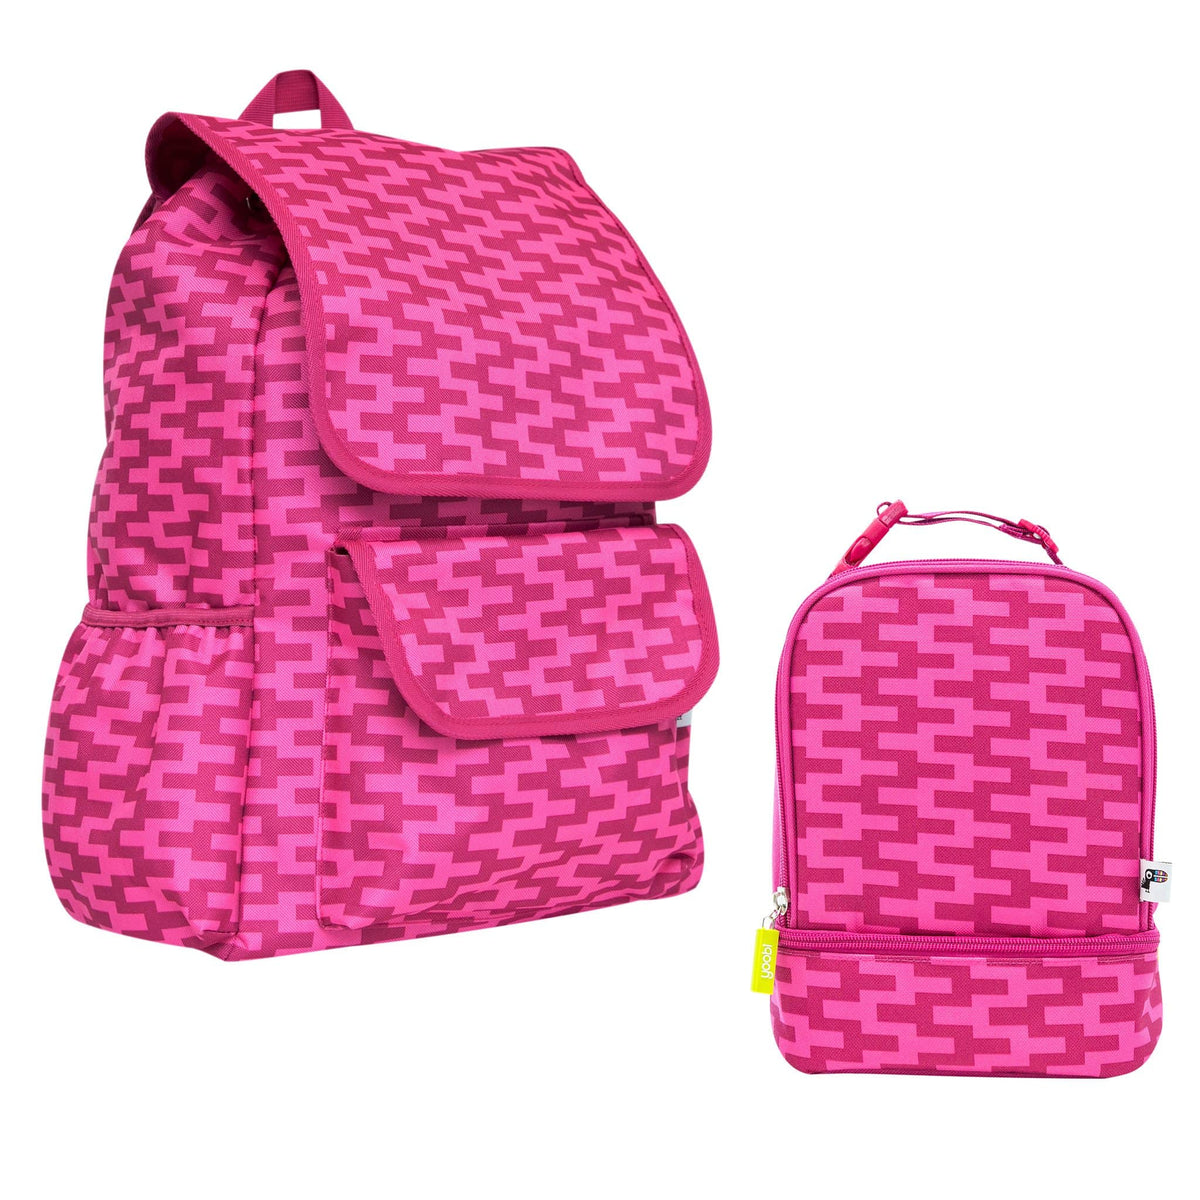 Drawstring Backpack Bundle - Pink Zig Zag